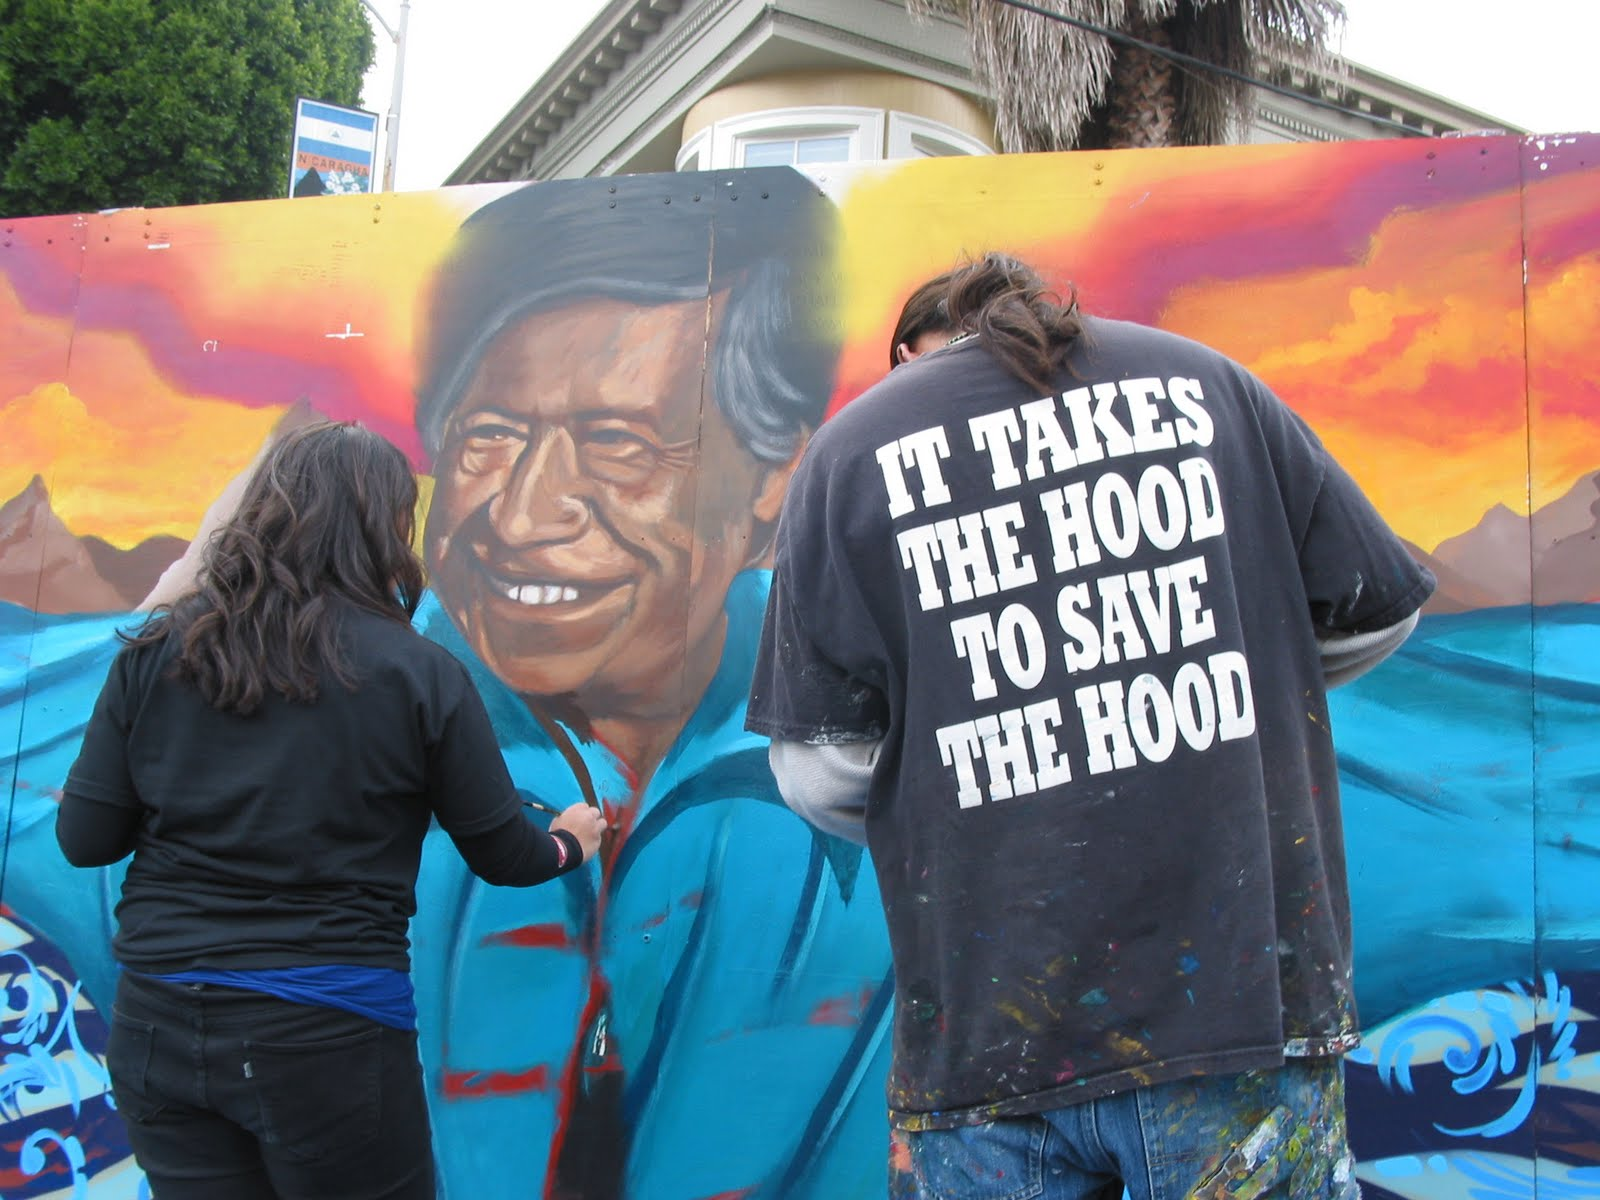 """""""Nothing about us without us,"""" or, put more eloquently, """"It takes the hood to save the hood,"""" the motto of the San Francisco nonprofit  United Playaz ."""